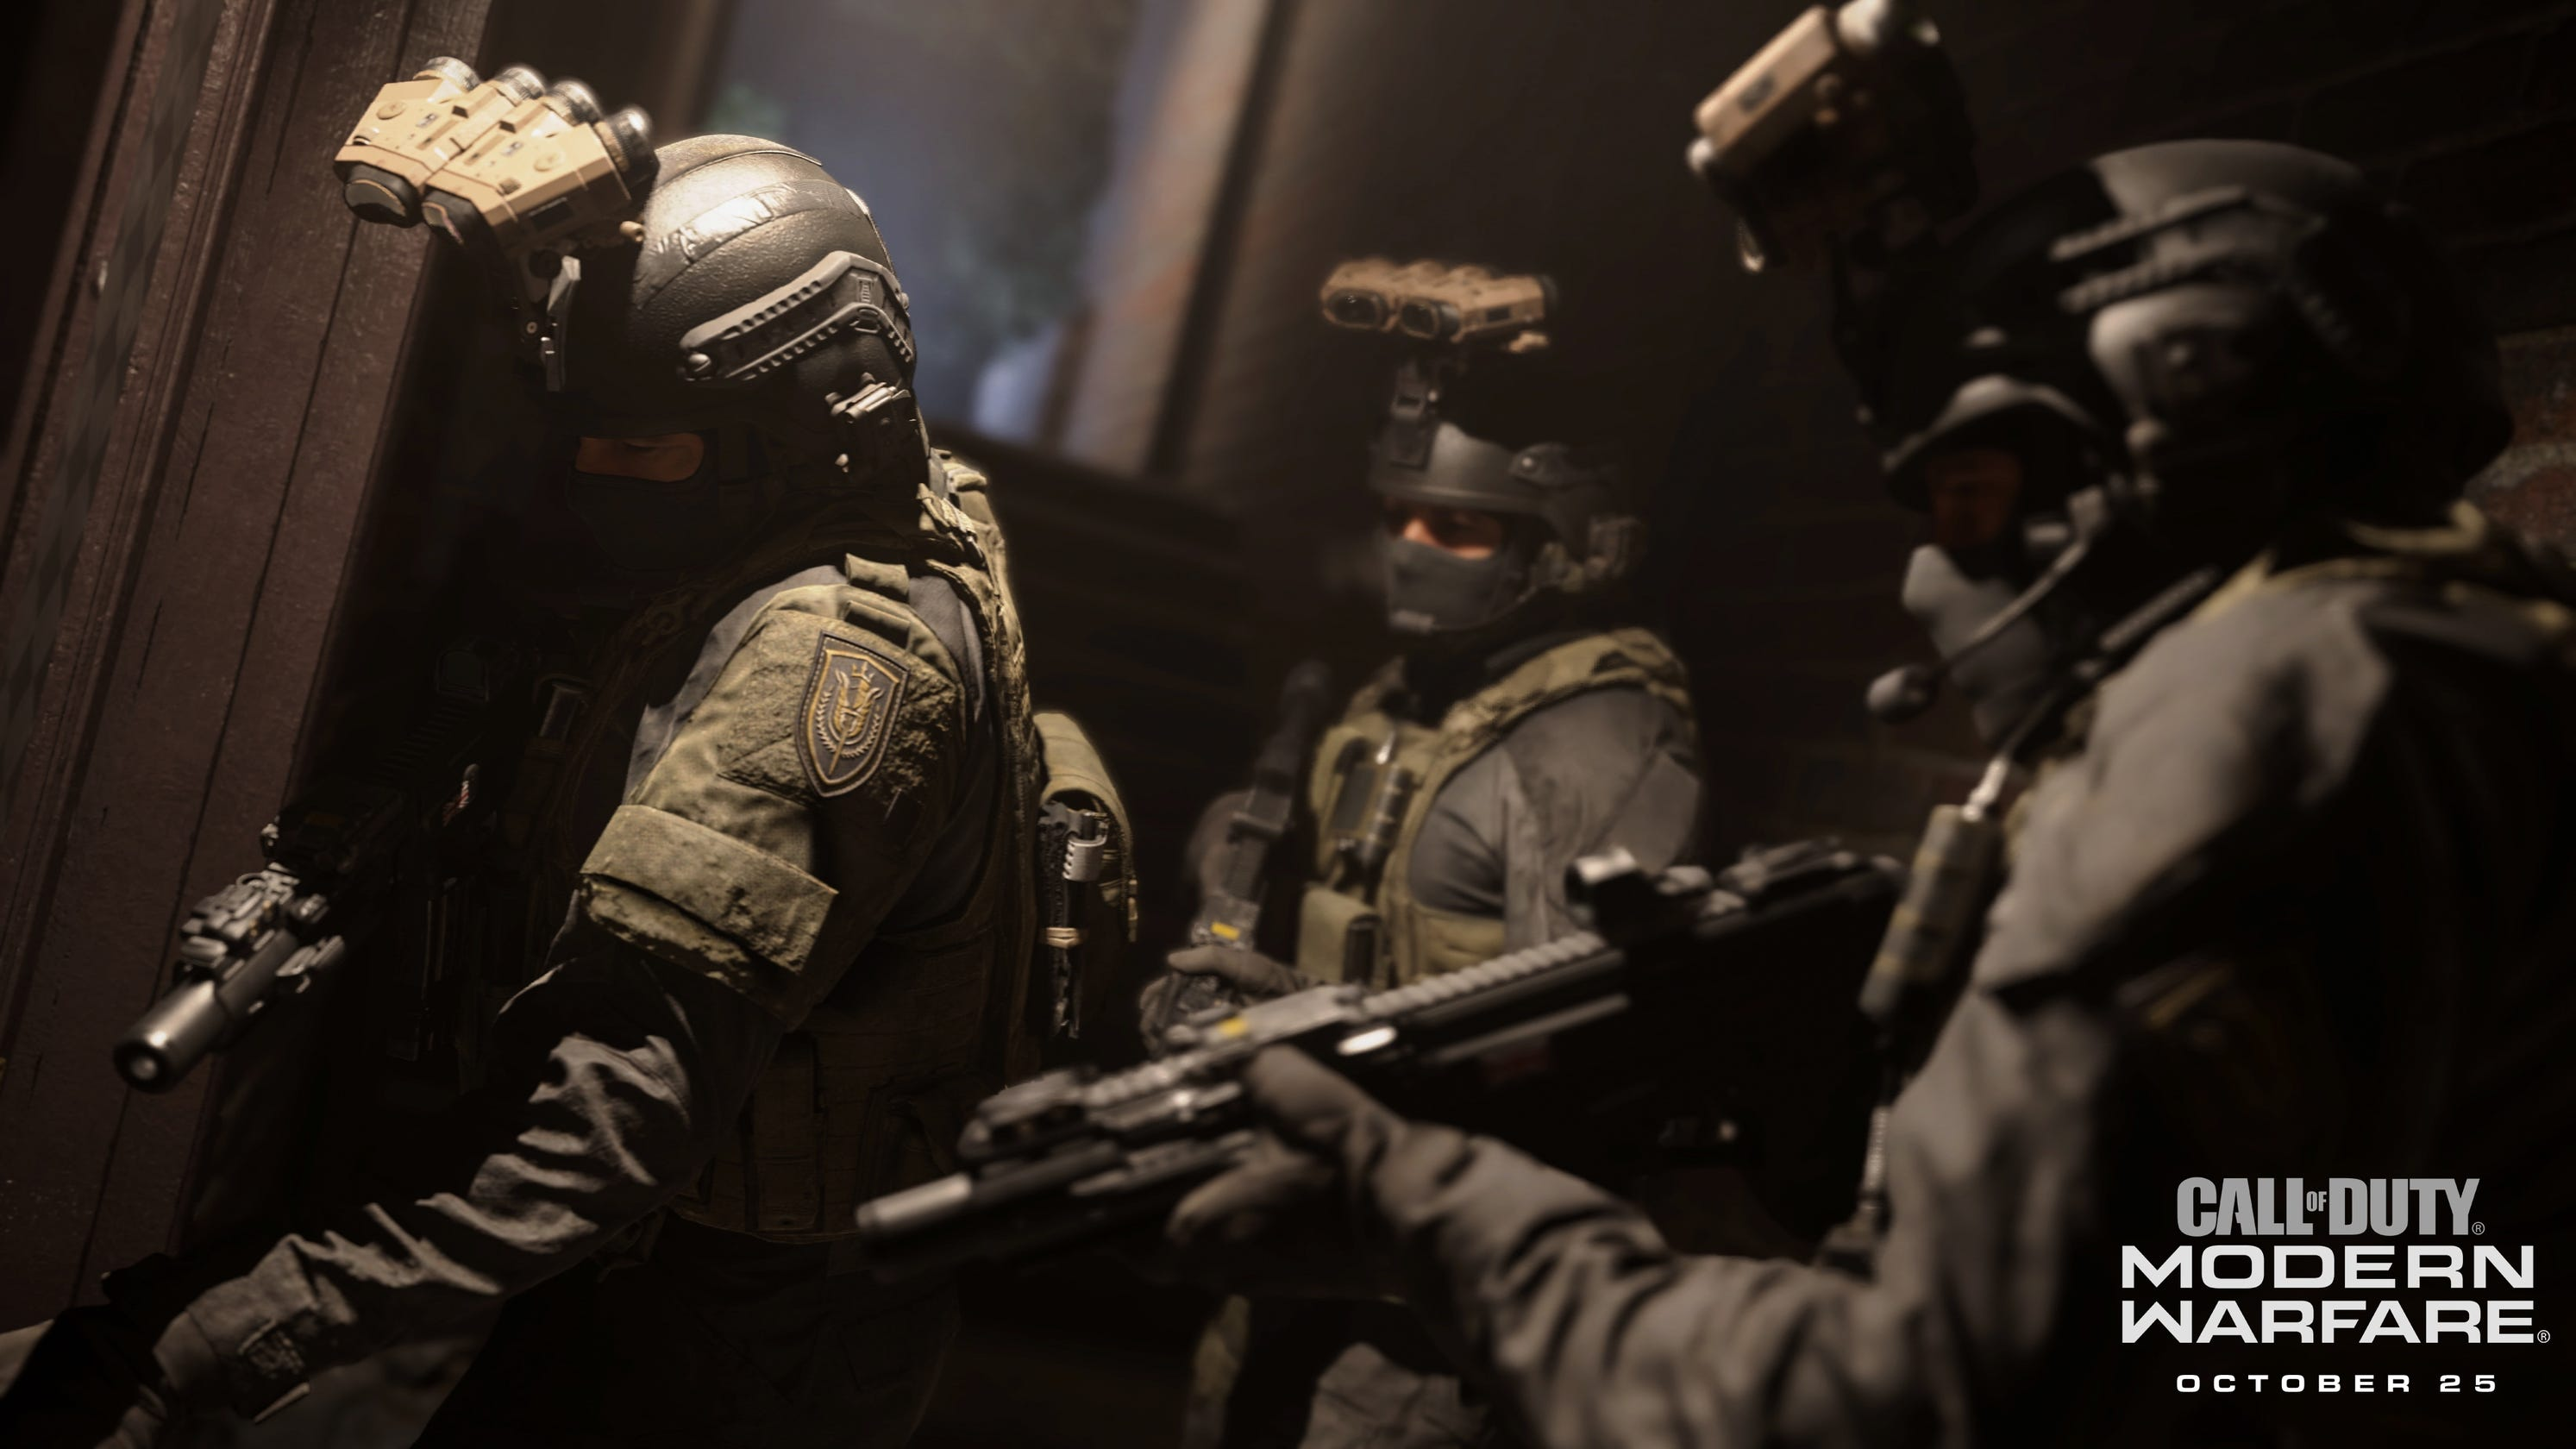 Call of Duty: Modern Warfare release date